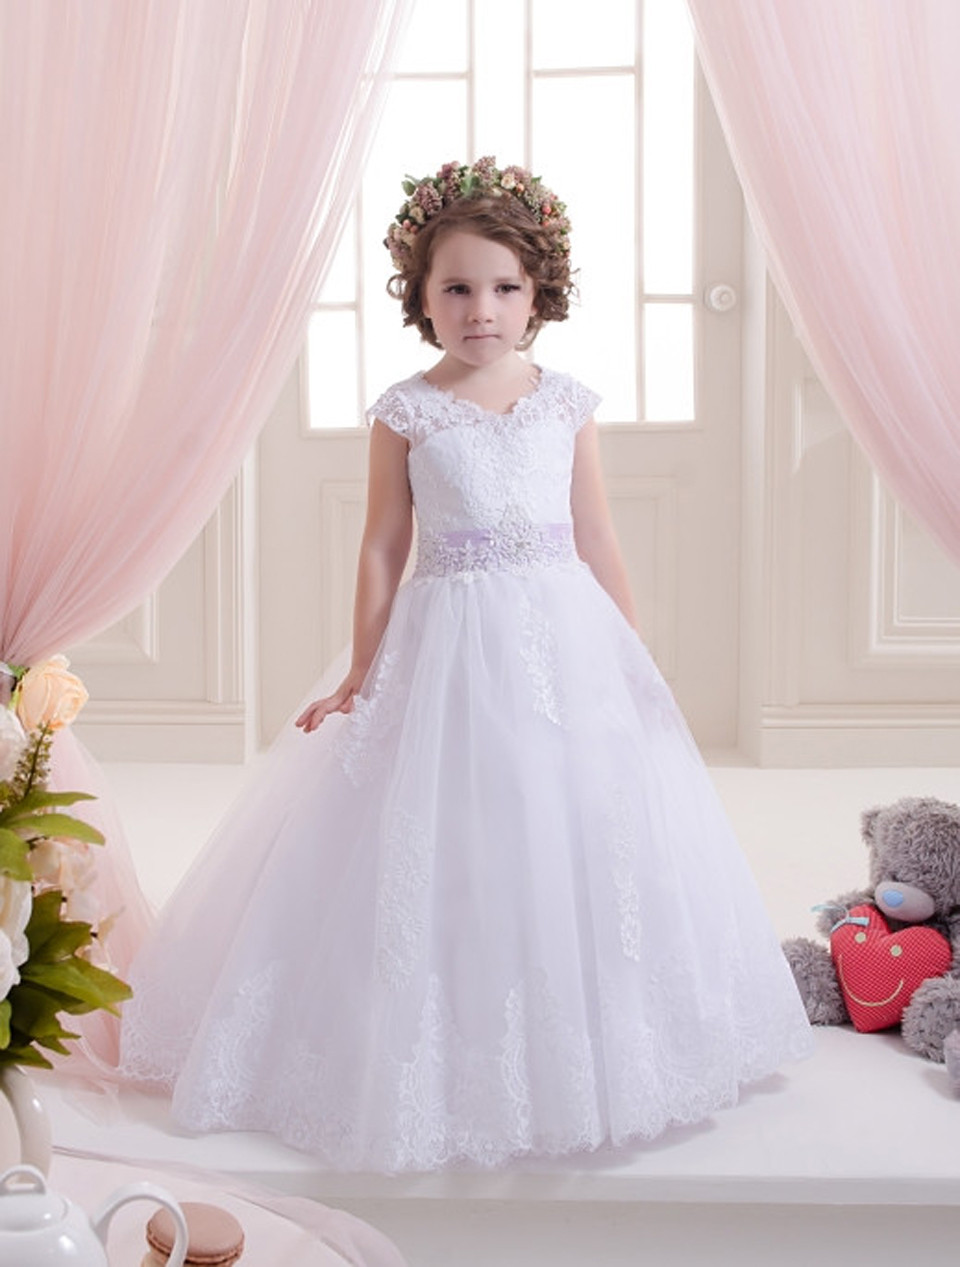 Gorgeous Girls First Communion Dress Ball Gown White Lace Up O-Neck Flower Girl Dress Short Sleeves Robe Fille Pageant Dresses lovely pink ball gown short flower girl dresses 2018 beaded pearls first communion dresses for girls pageant dress